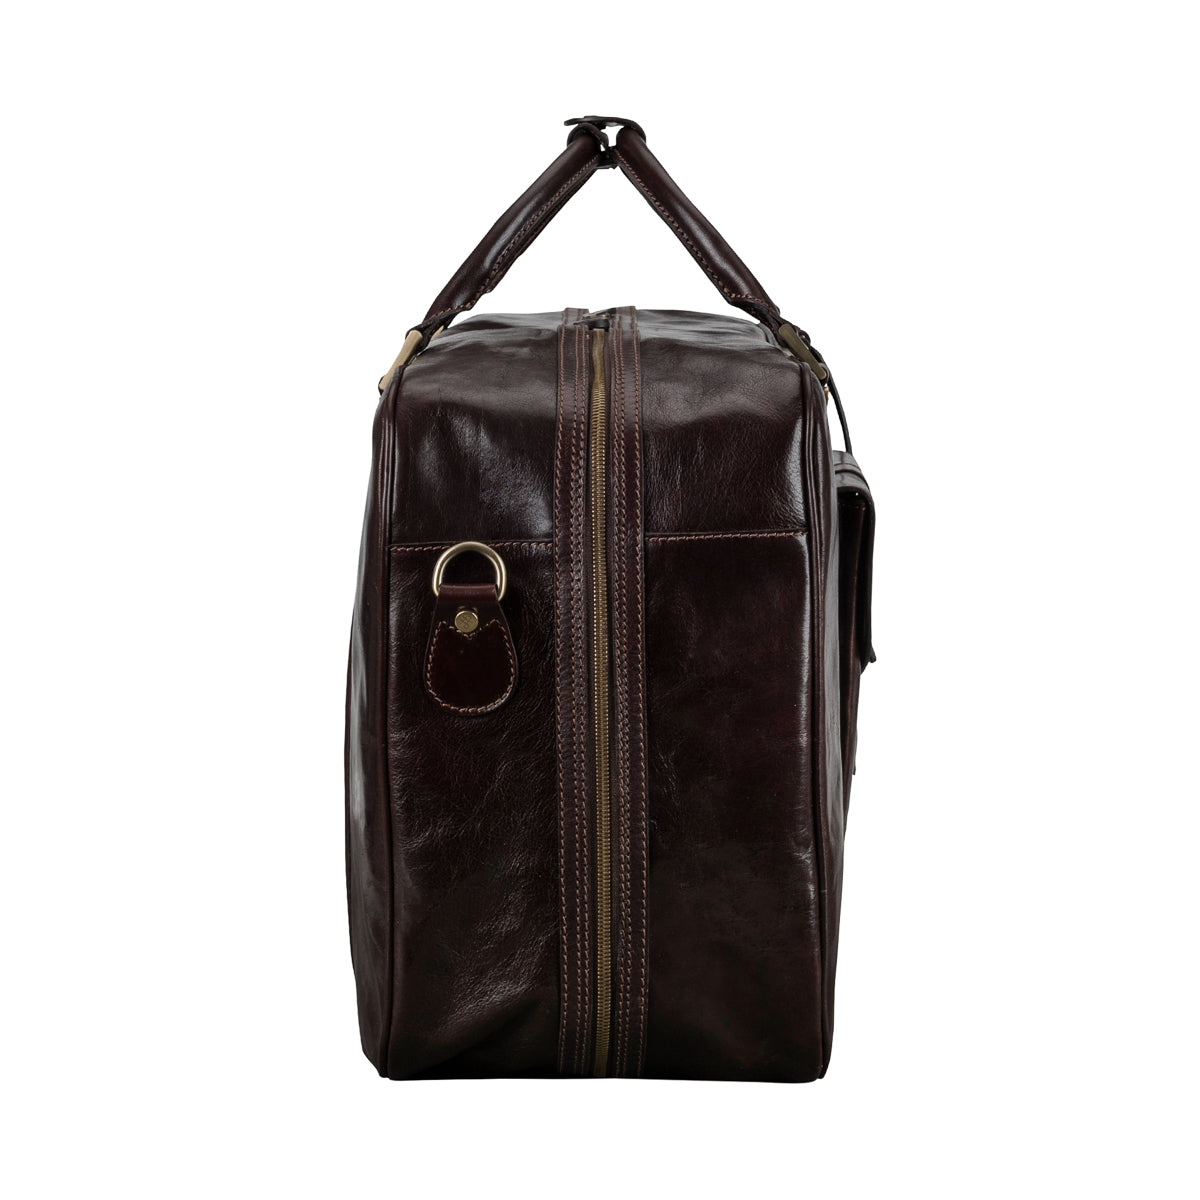 Image 3 of the 'Maurizio' Dark Chocolate Italian Veg-Tanned Leather Suitcase